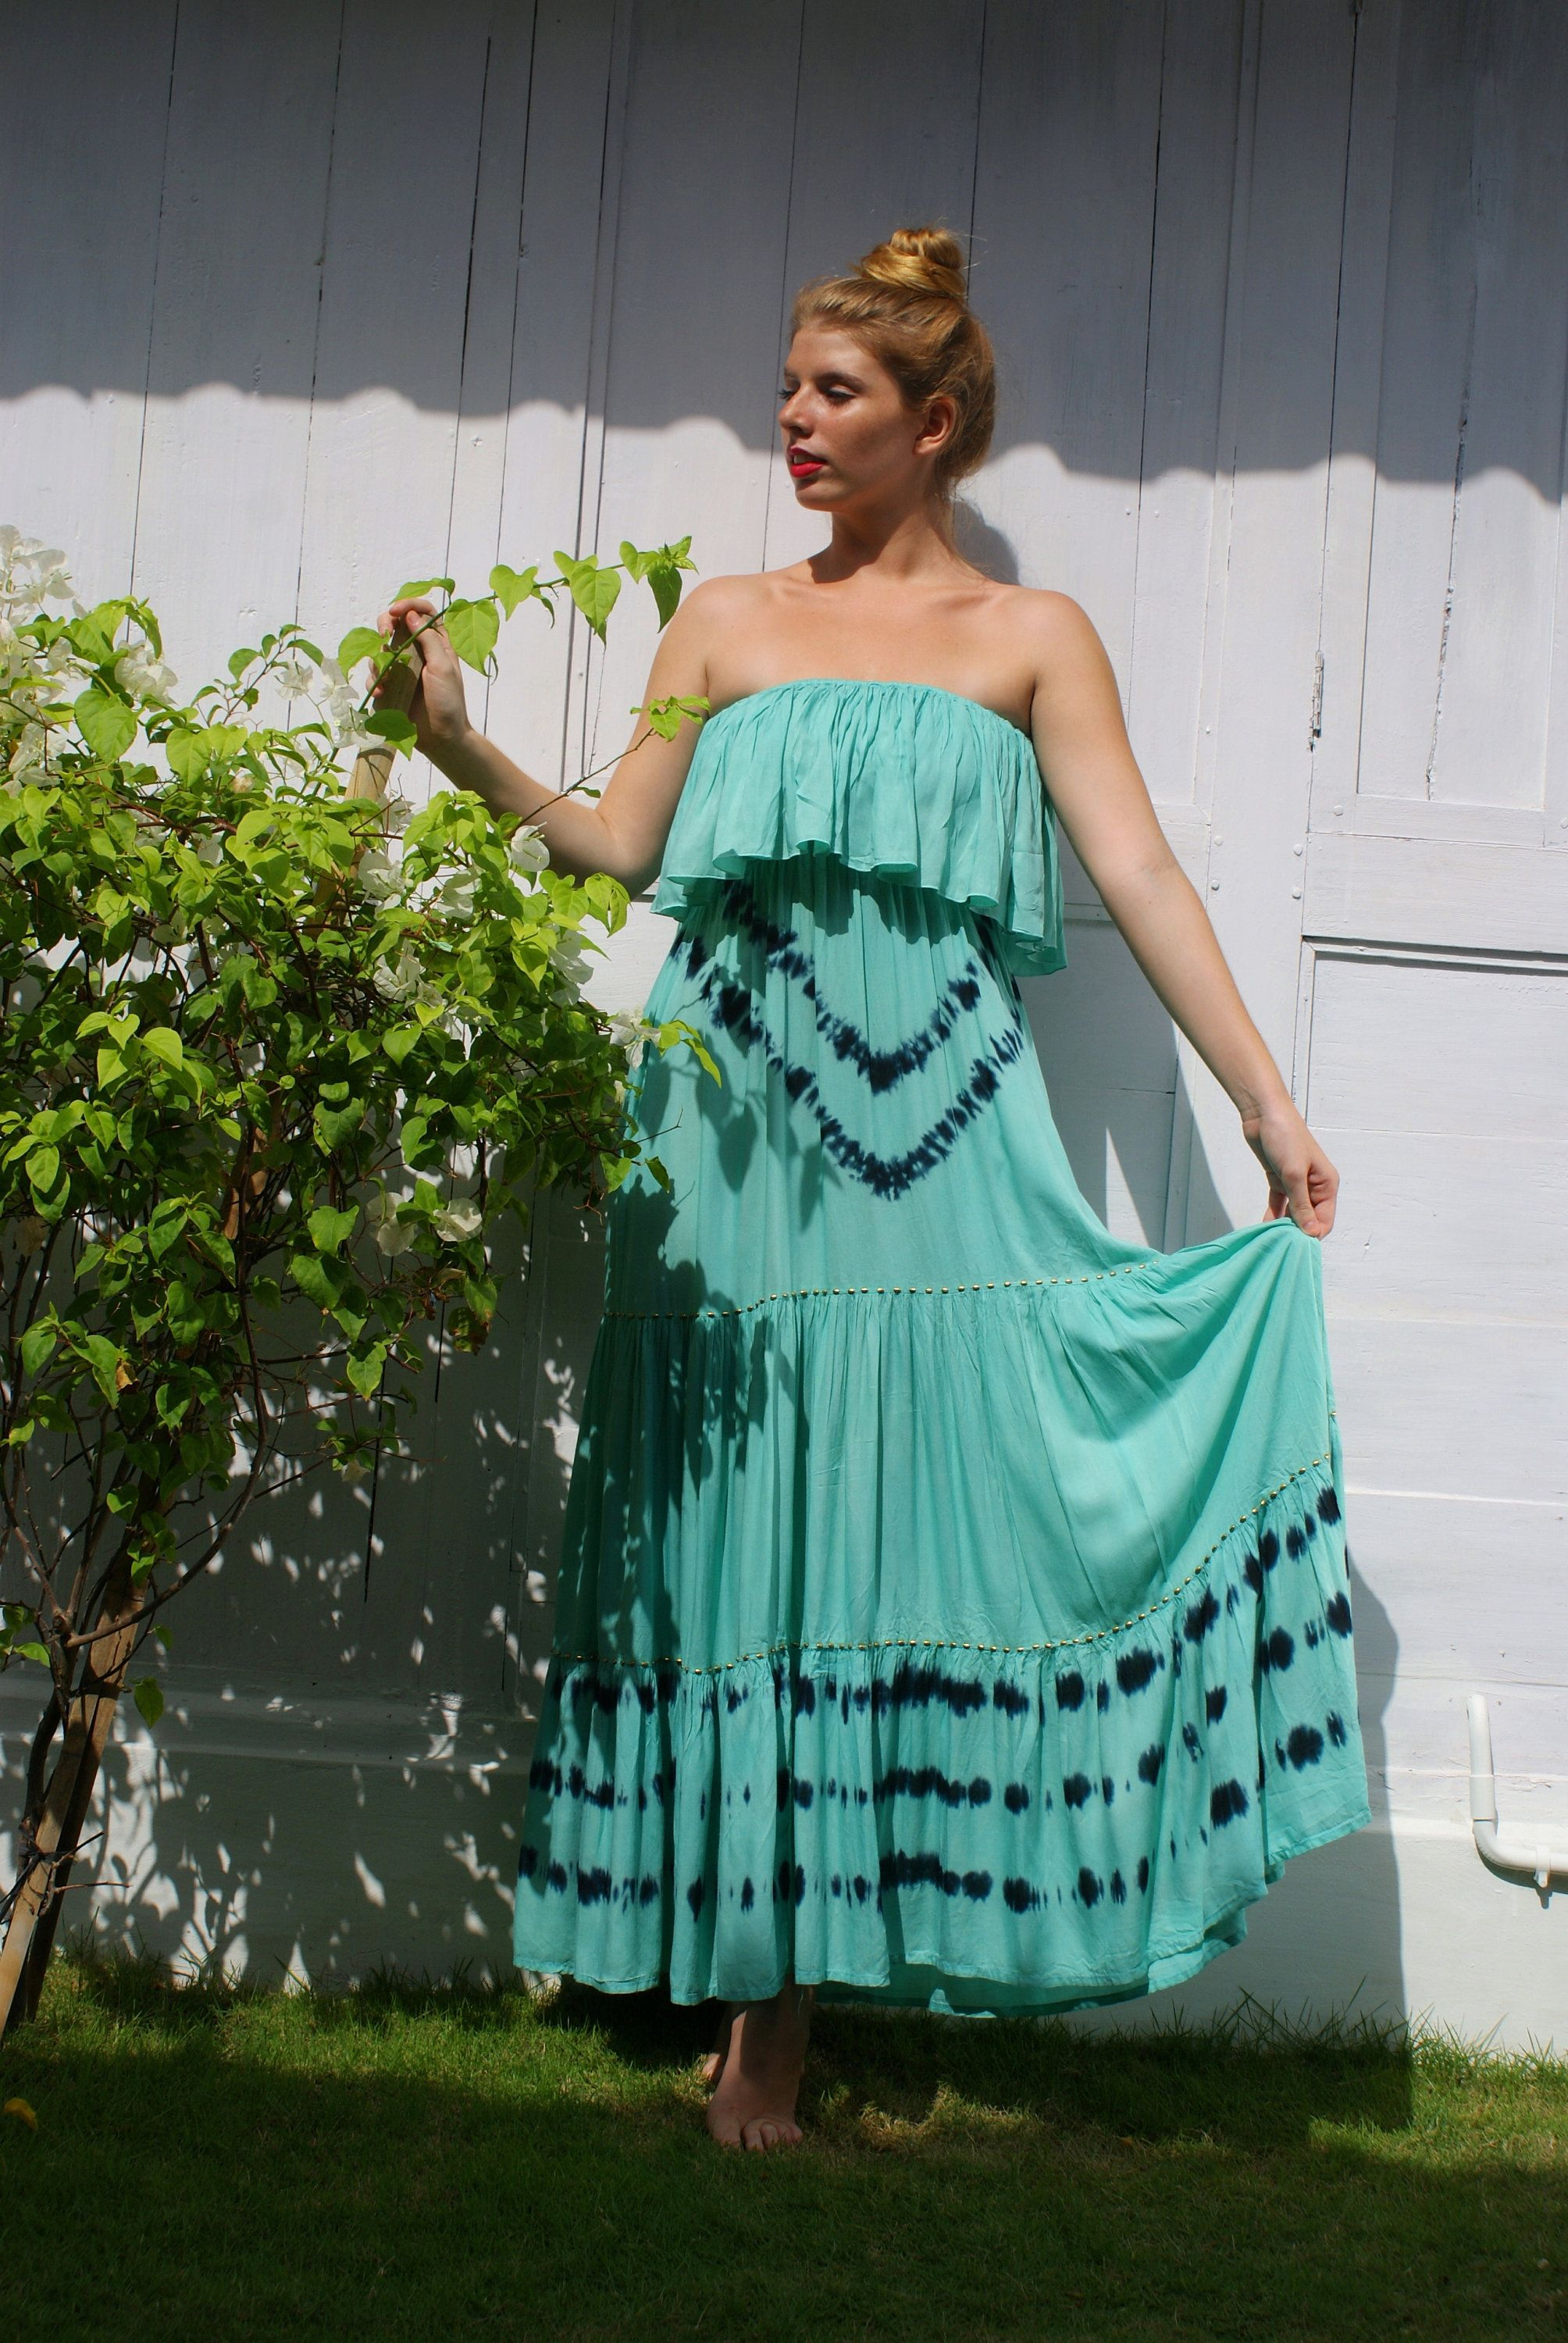 Excited To Share The Latest Addition To My Etsy Shop Maxi Off Shoulder Bohemian Loose Fi Loose Fitting Dresses Summer Summer Maxi Dress Loose Fitting Dresses [ 3000 x 2008 Pixel ]